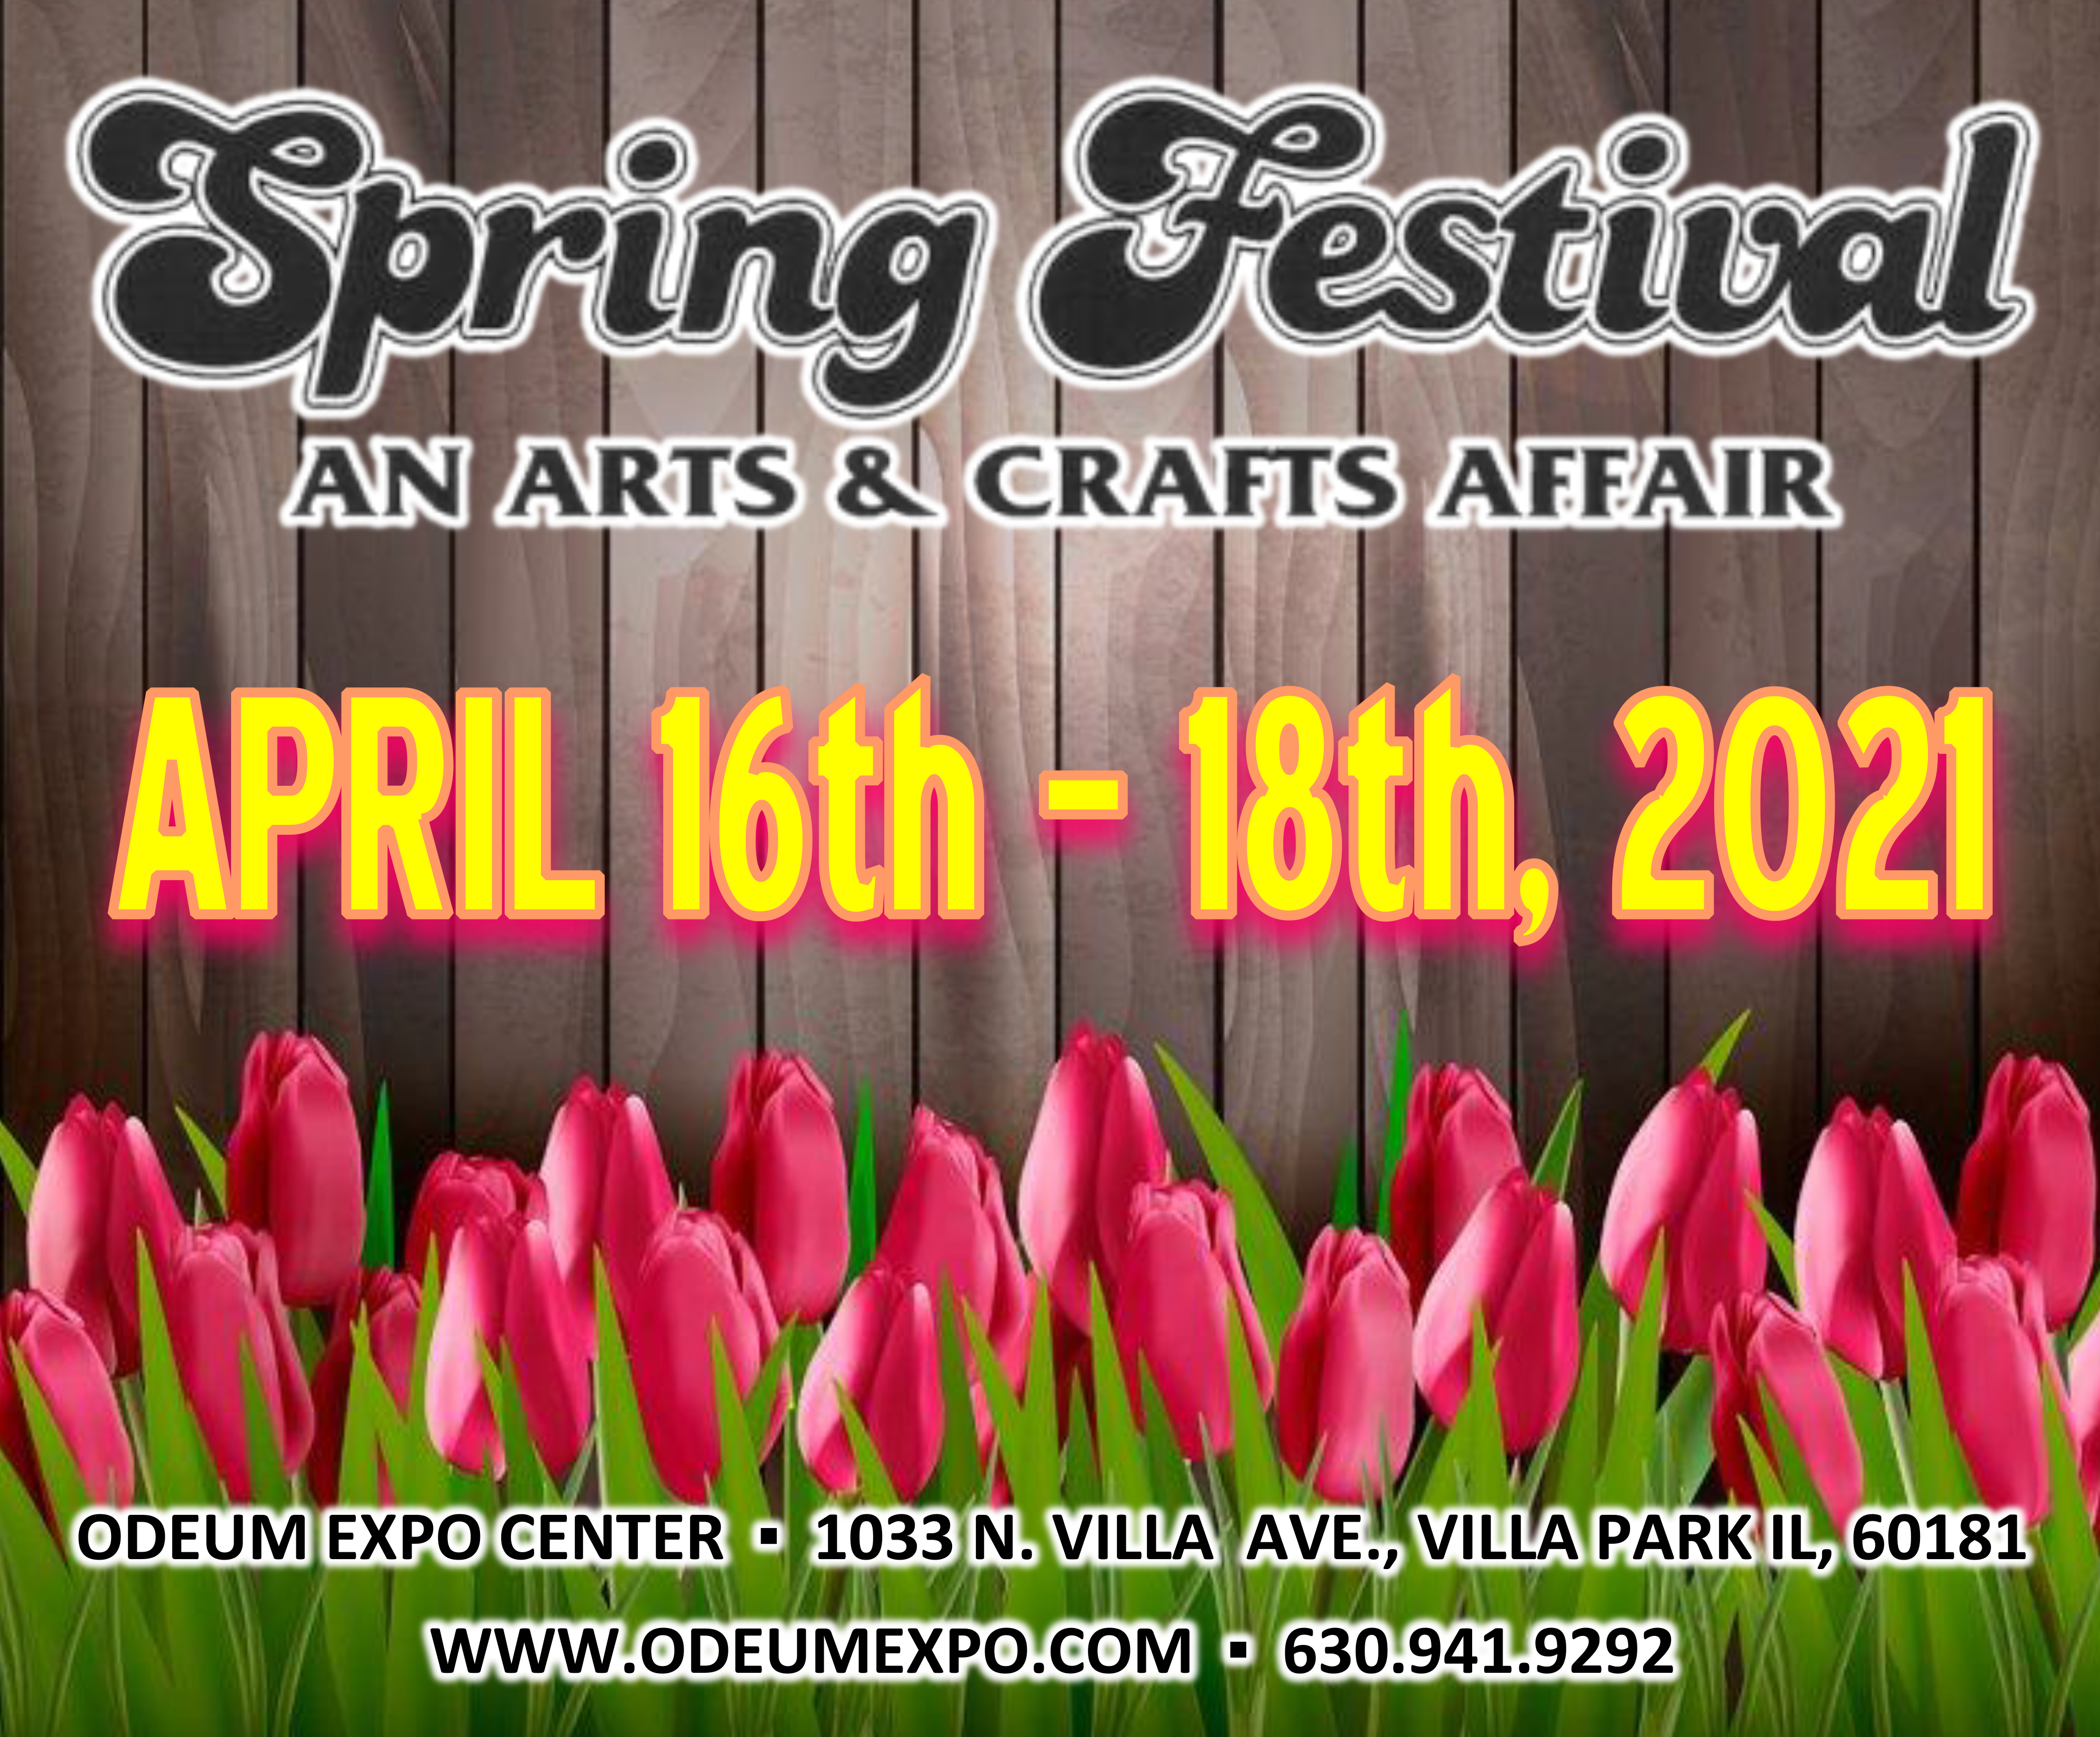 Logo for the Spring Arts and Crafts Festival April 16-18, 2021, at the Odeum Expo Center in Villa Park, Illinois